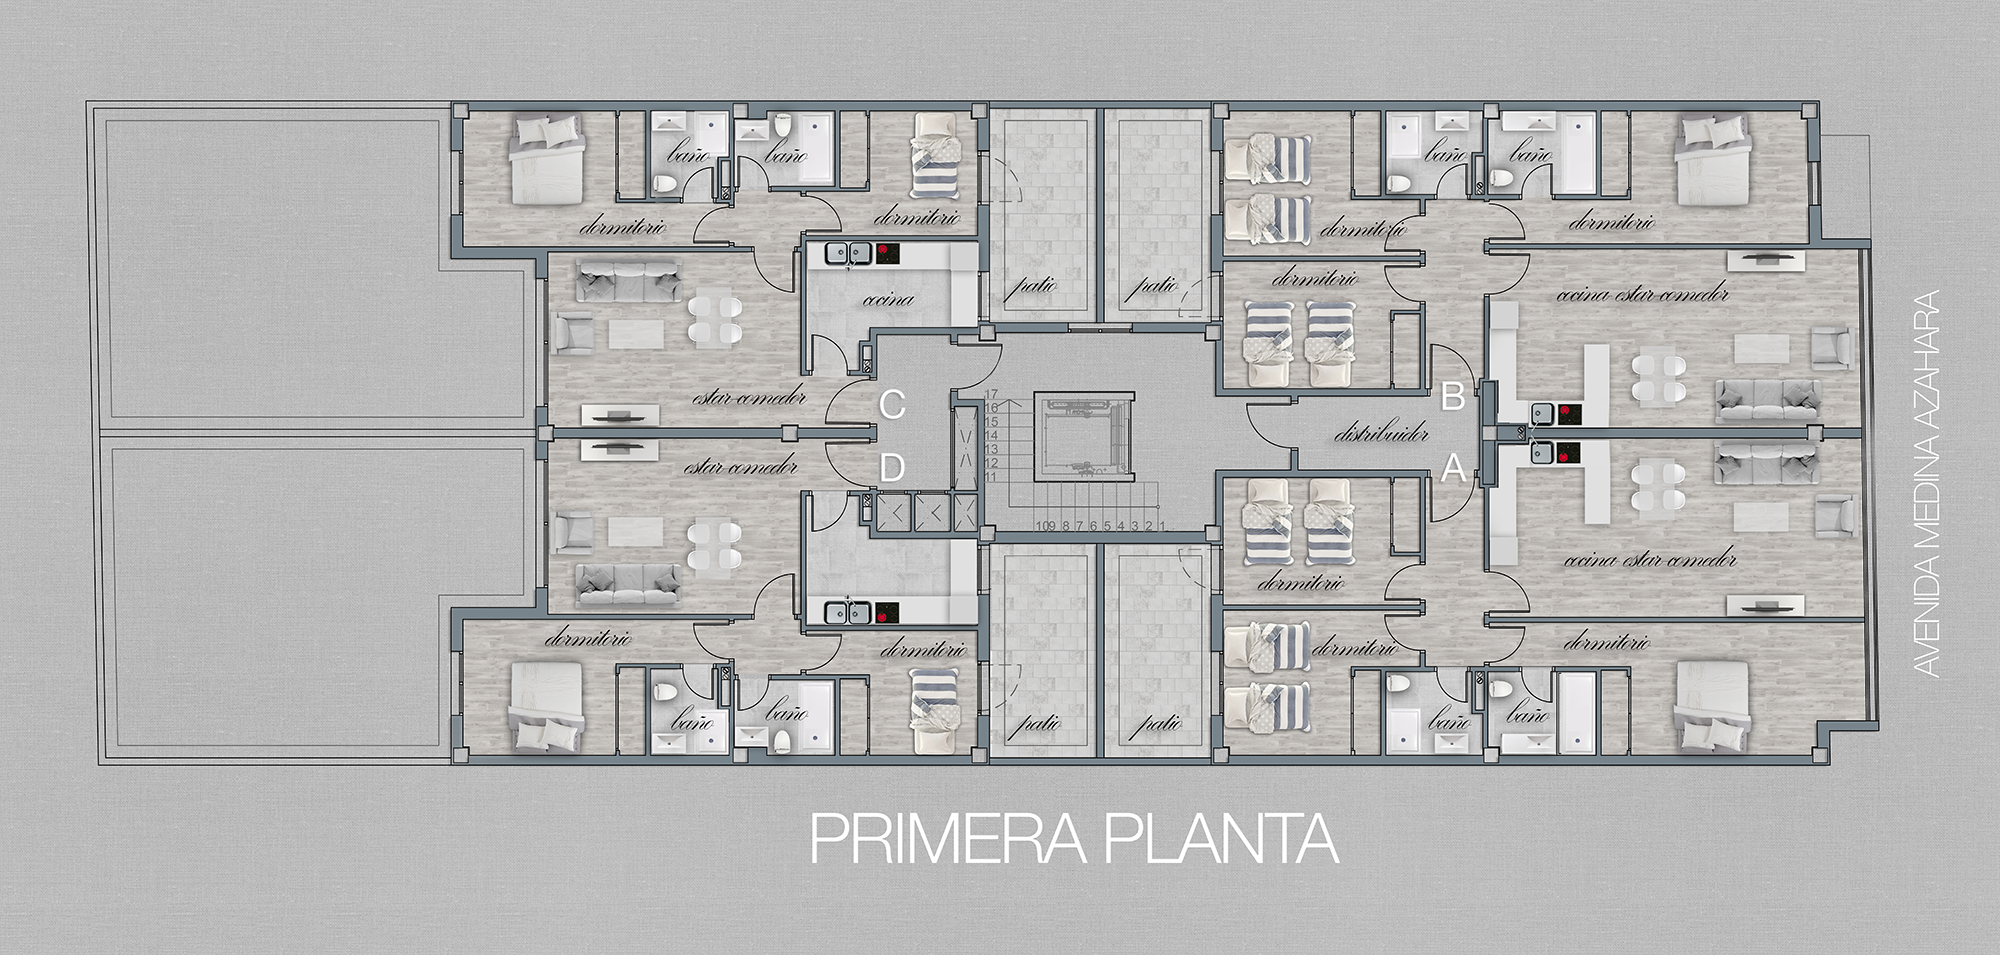 PLANTA PRIMERA COLOREADA